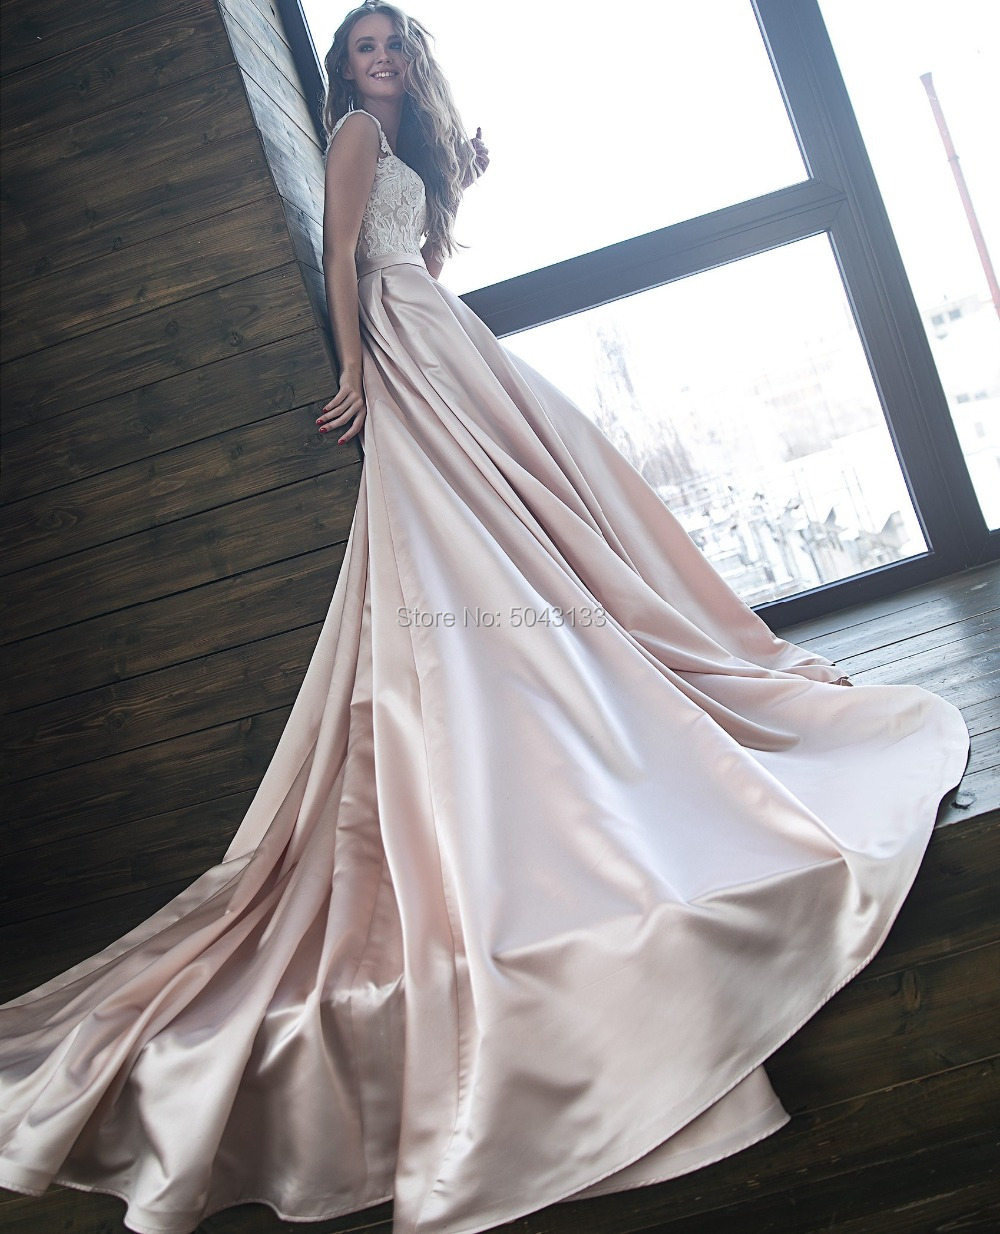 Image 2 - Sexy Off The Shoulder Satin Wedding Dresses Romantic Lace Applique Bridal Gowns with Sleeves Chapel Train Bride Dress 2019-in Wedding Dresses from Weddings & Events